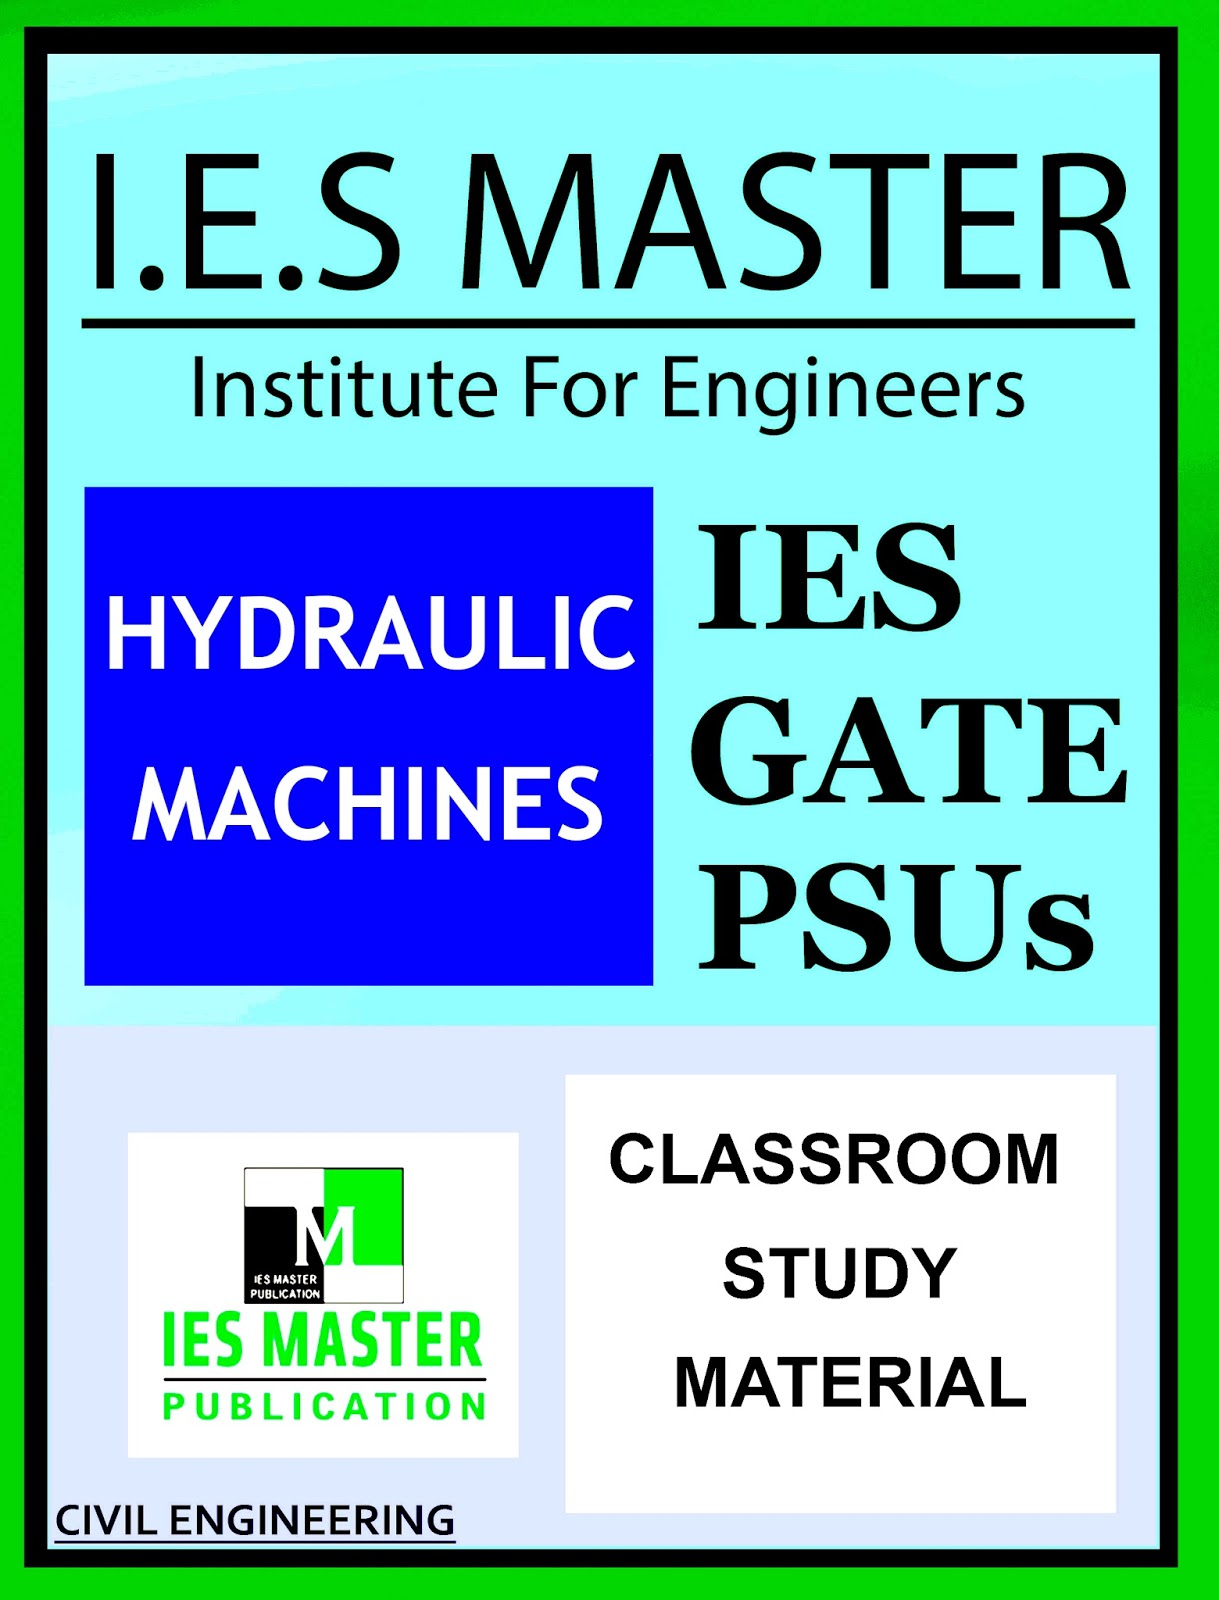 GATE MATERIAL] IES MASTER Hydraulic Machines Study Material